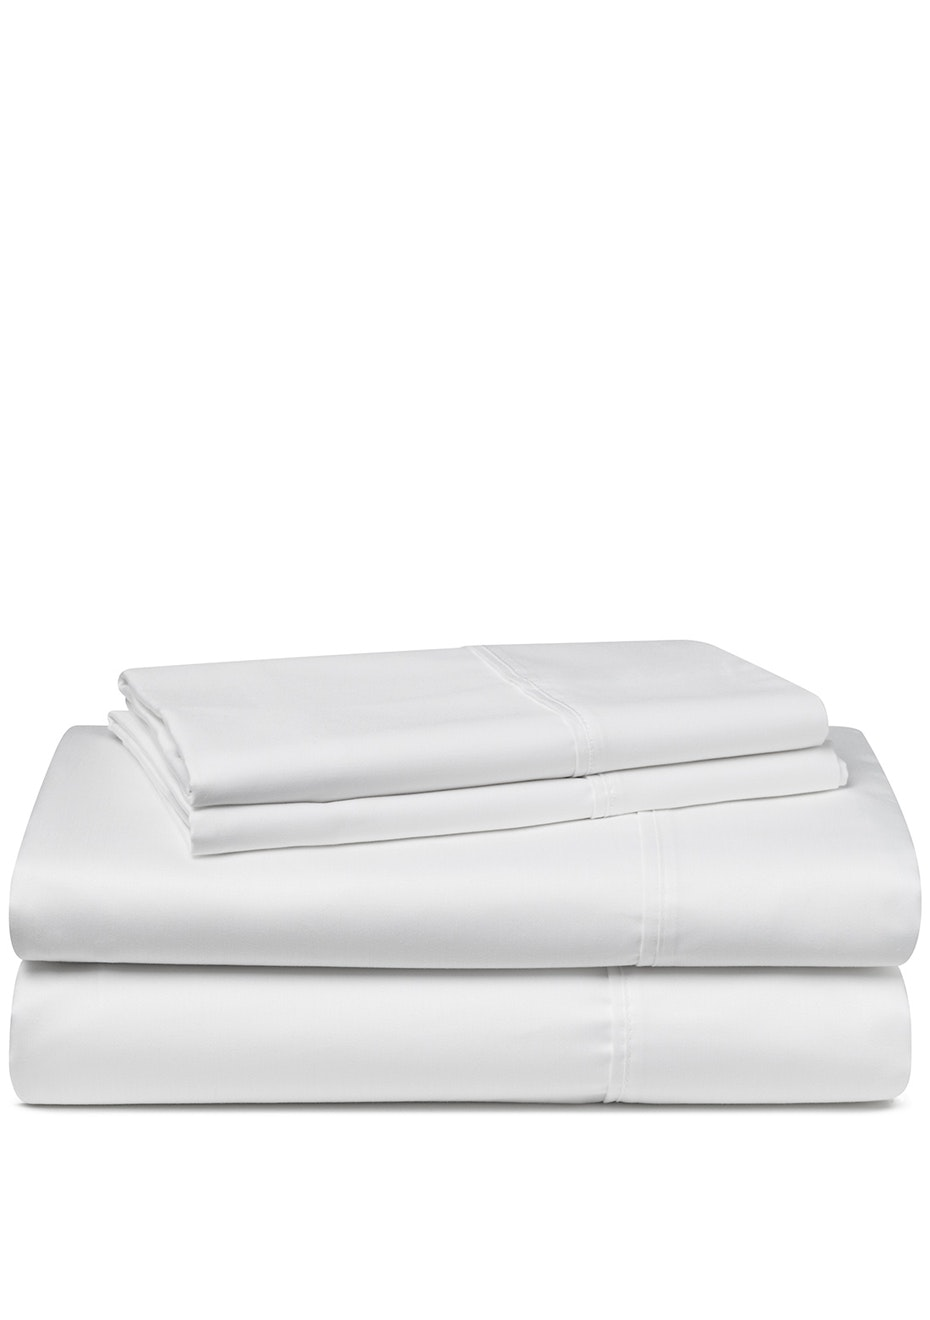 Palazzo Royale 1000 Thread Count Premium Blend Sheet Set King Bed Crisp White